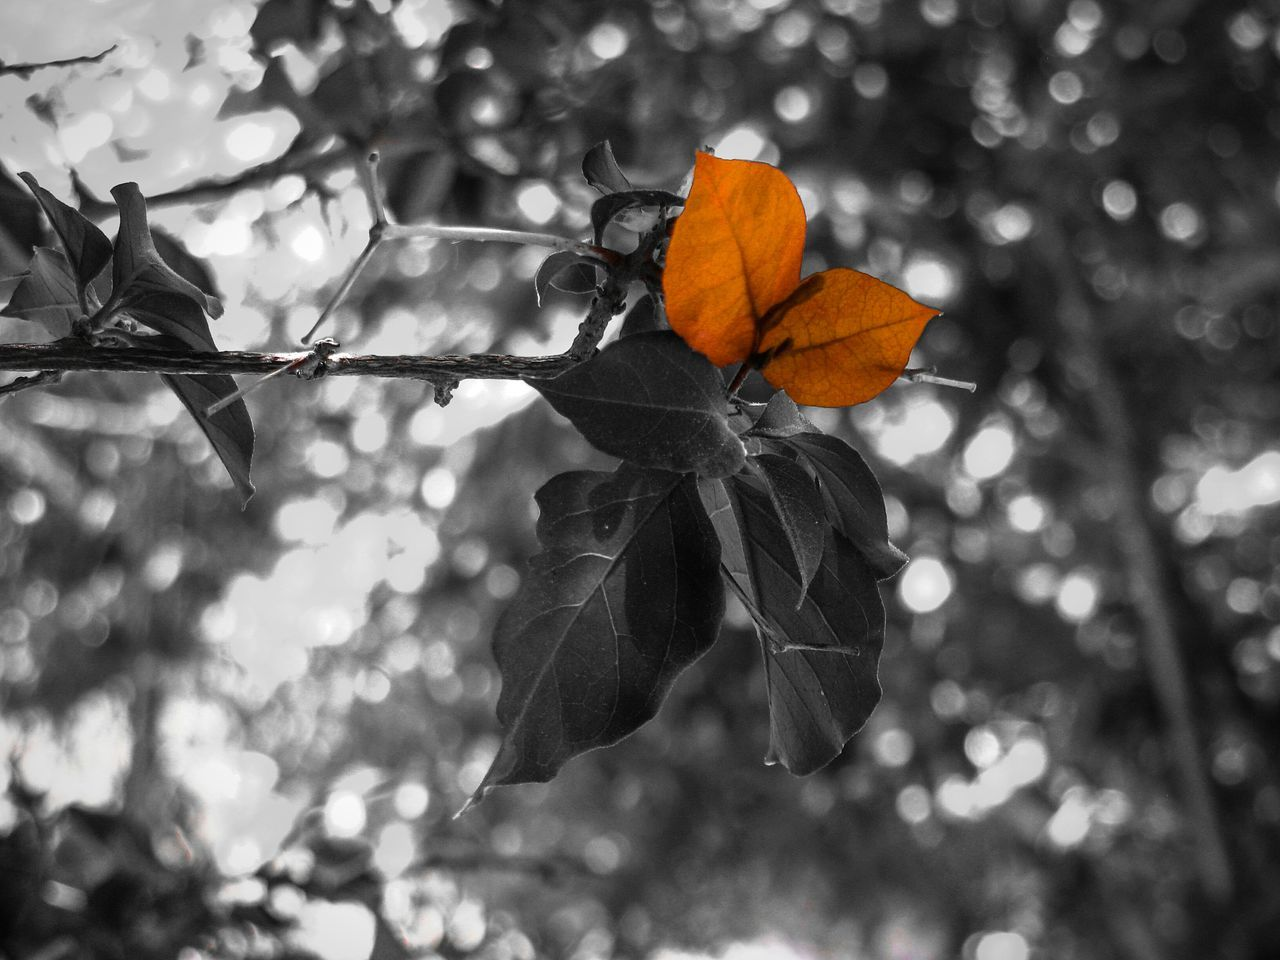 Leaves Red Leaves Carmine Black And Red Black Background Nature Leaf Fragility Beauty In Nature Freshness Tree Tree Branches Branch Plant The Great Outdoors - 2017 EyeEm Awards